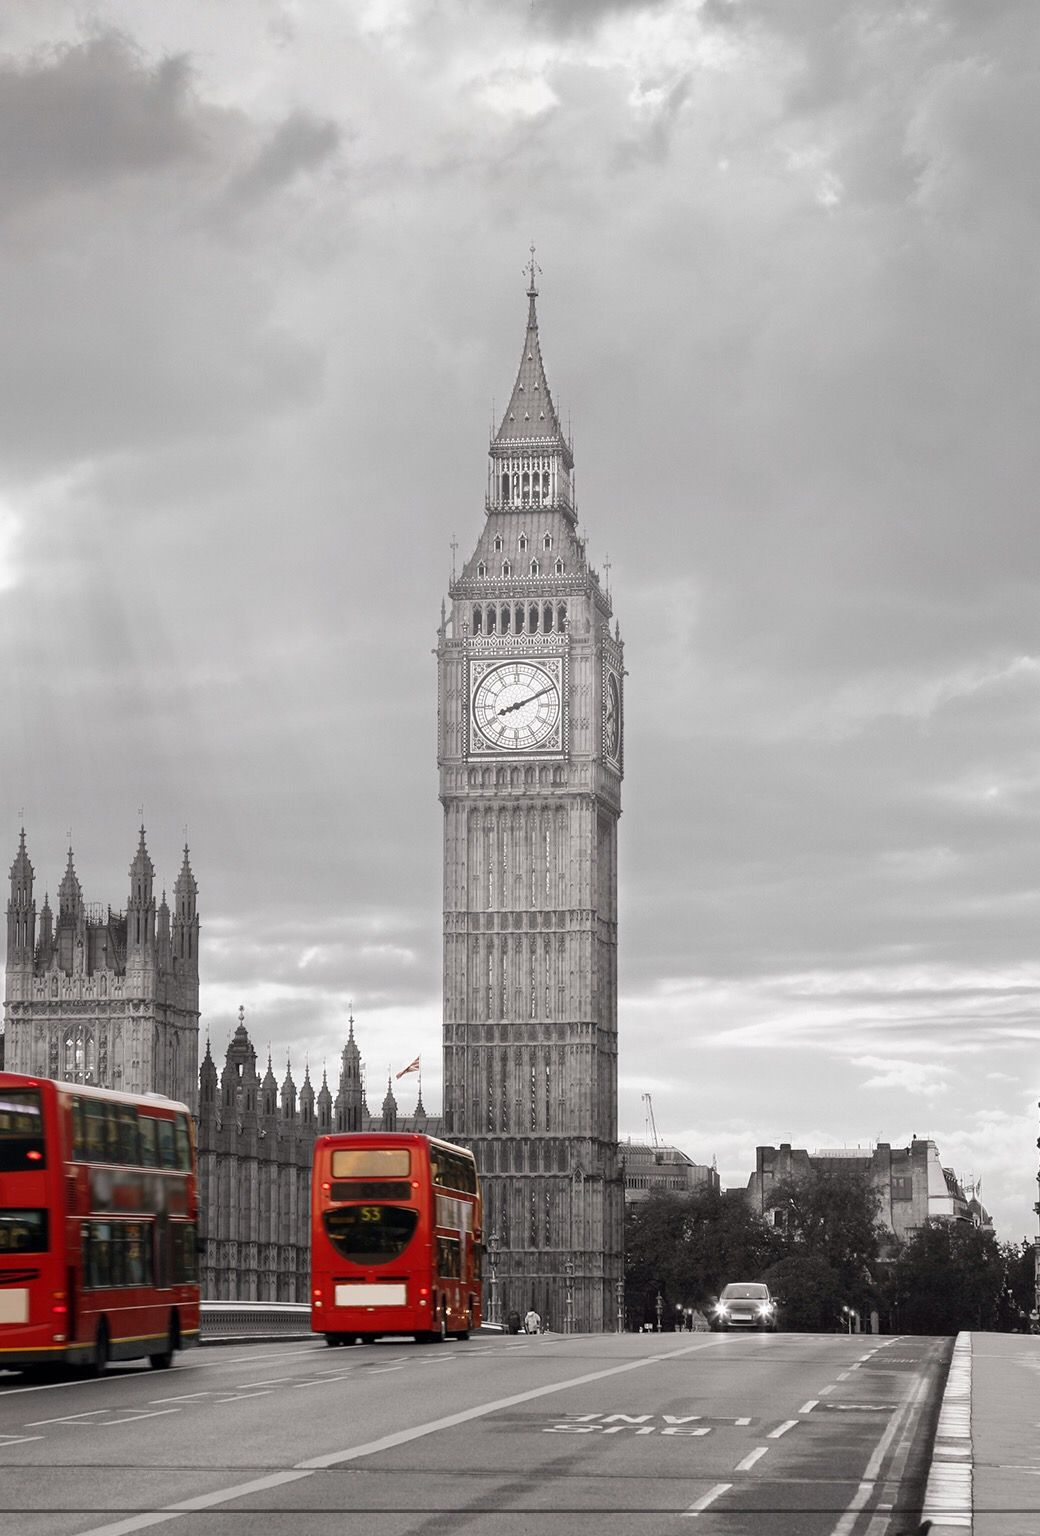 Wallpaper iphone london - City Unicolor London Big Ben Gray Red